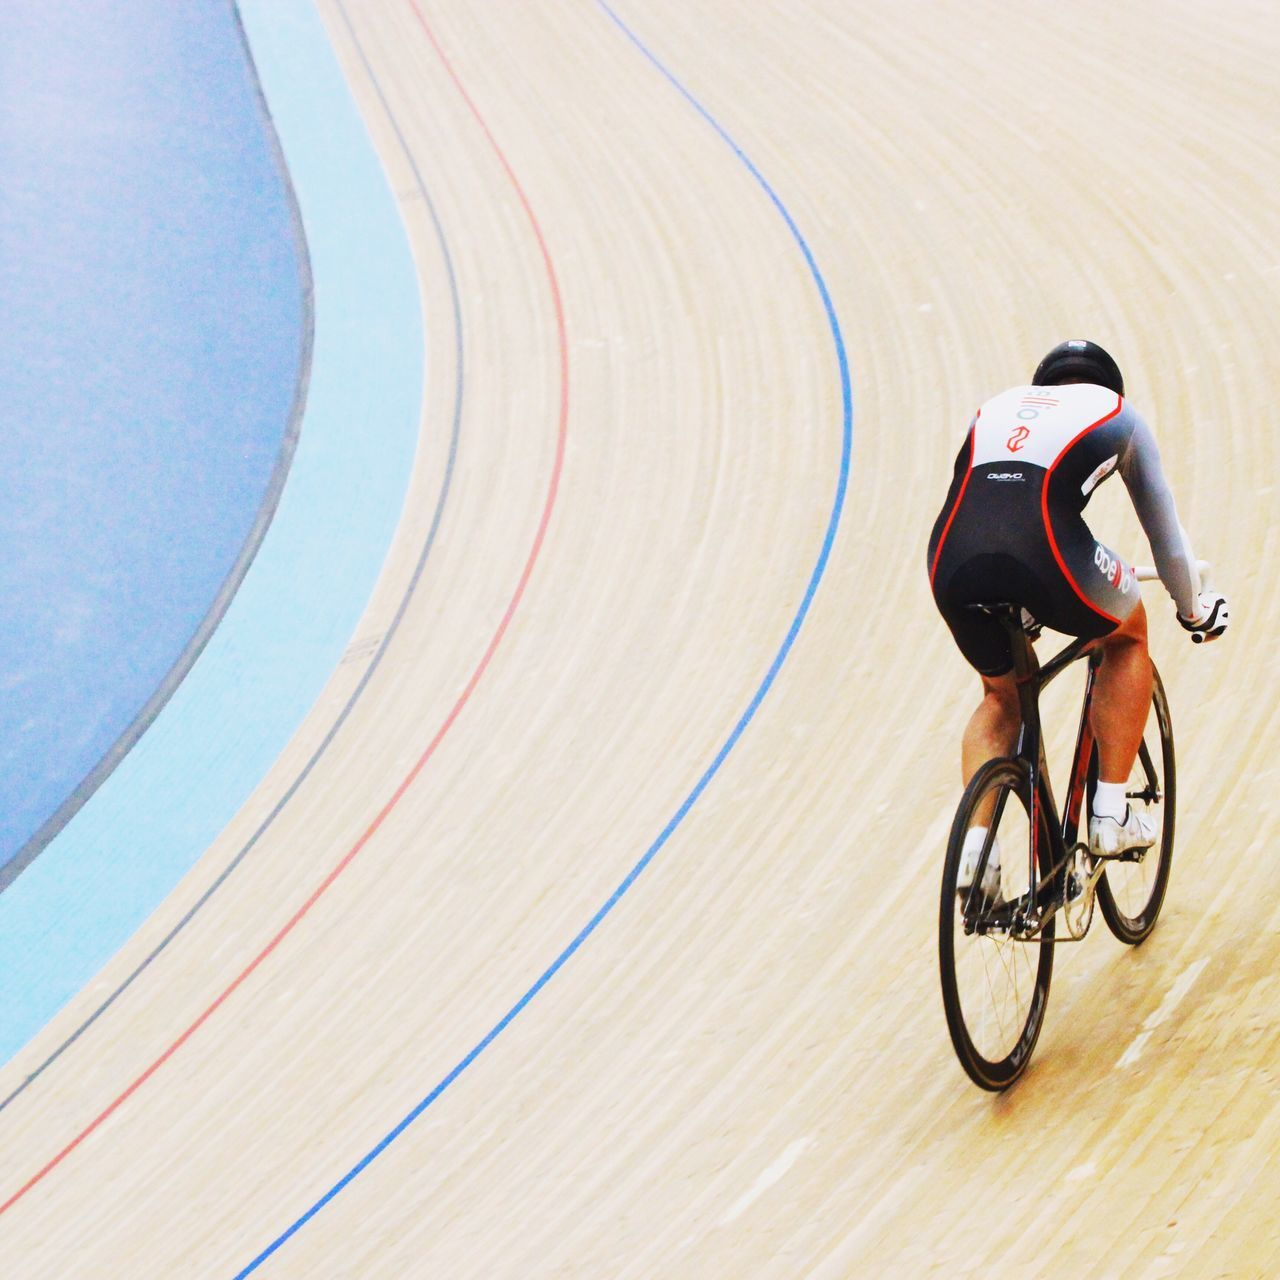 bicycle, cycling, sport, sports clothing, competition, men, riding, speed, sports race, one person, motion, transportation, sports track, racing bicycle, exercising, day, outdoors, sportsman, full length, competitive sport, athlete, one man only, people